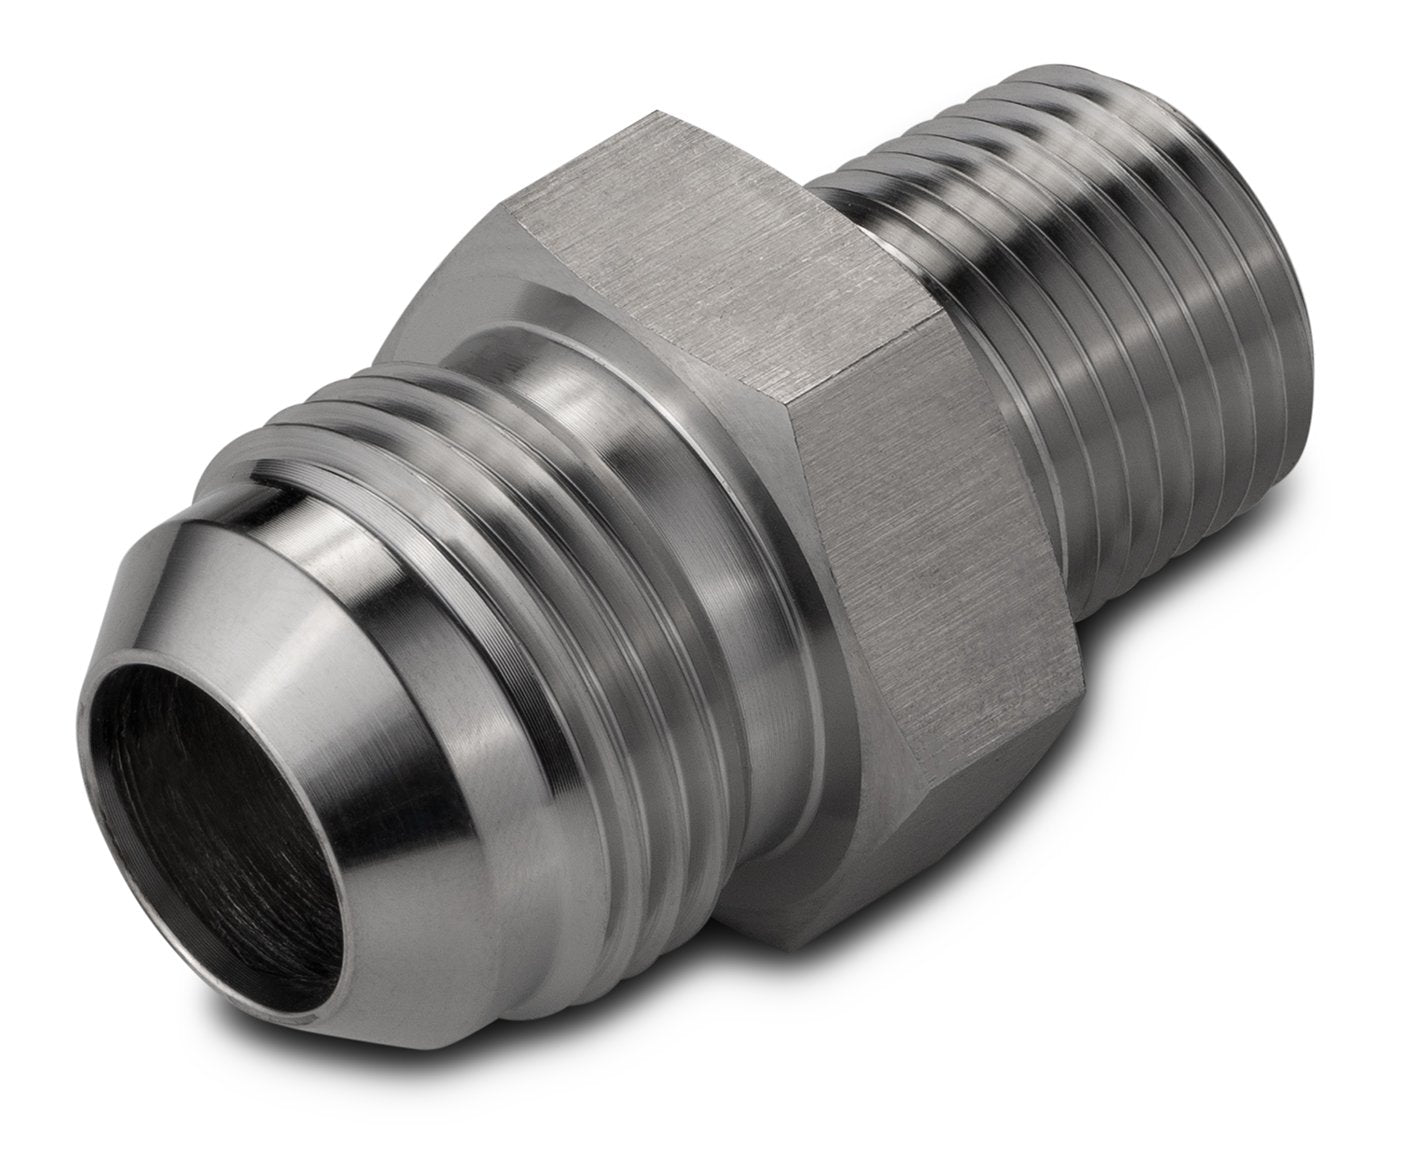 BVV 37° MJIC X MNPT Shop All Categories BVV 3/4-inch X 1/2-inch MNPT